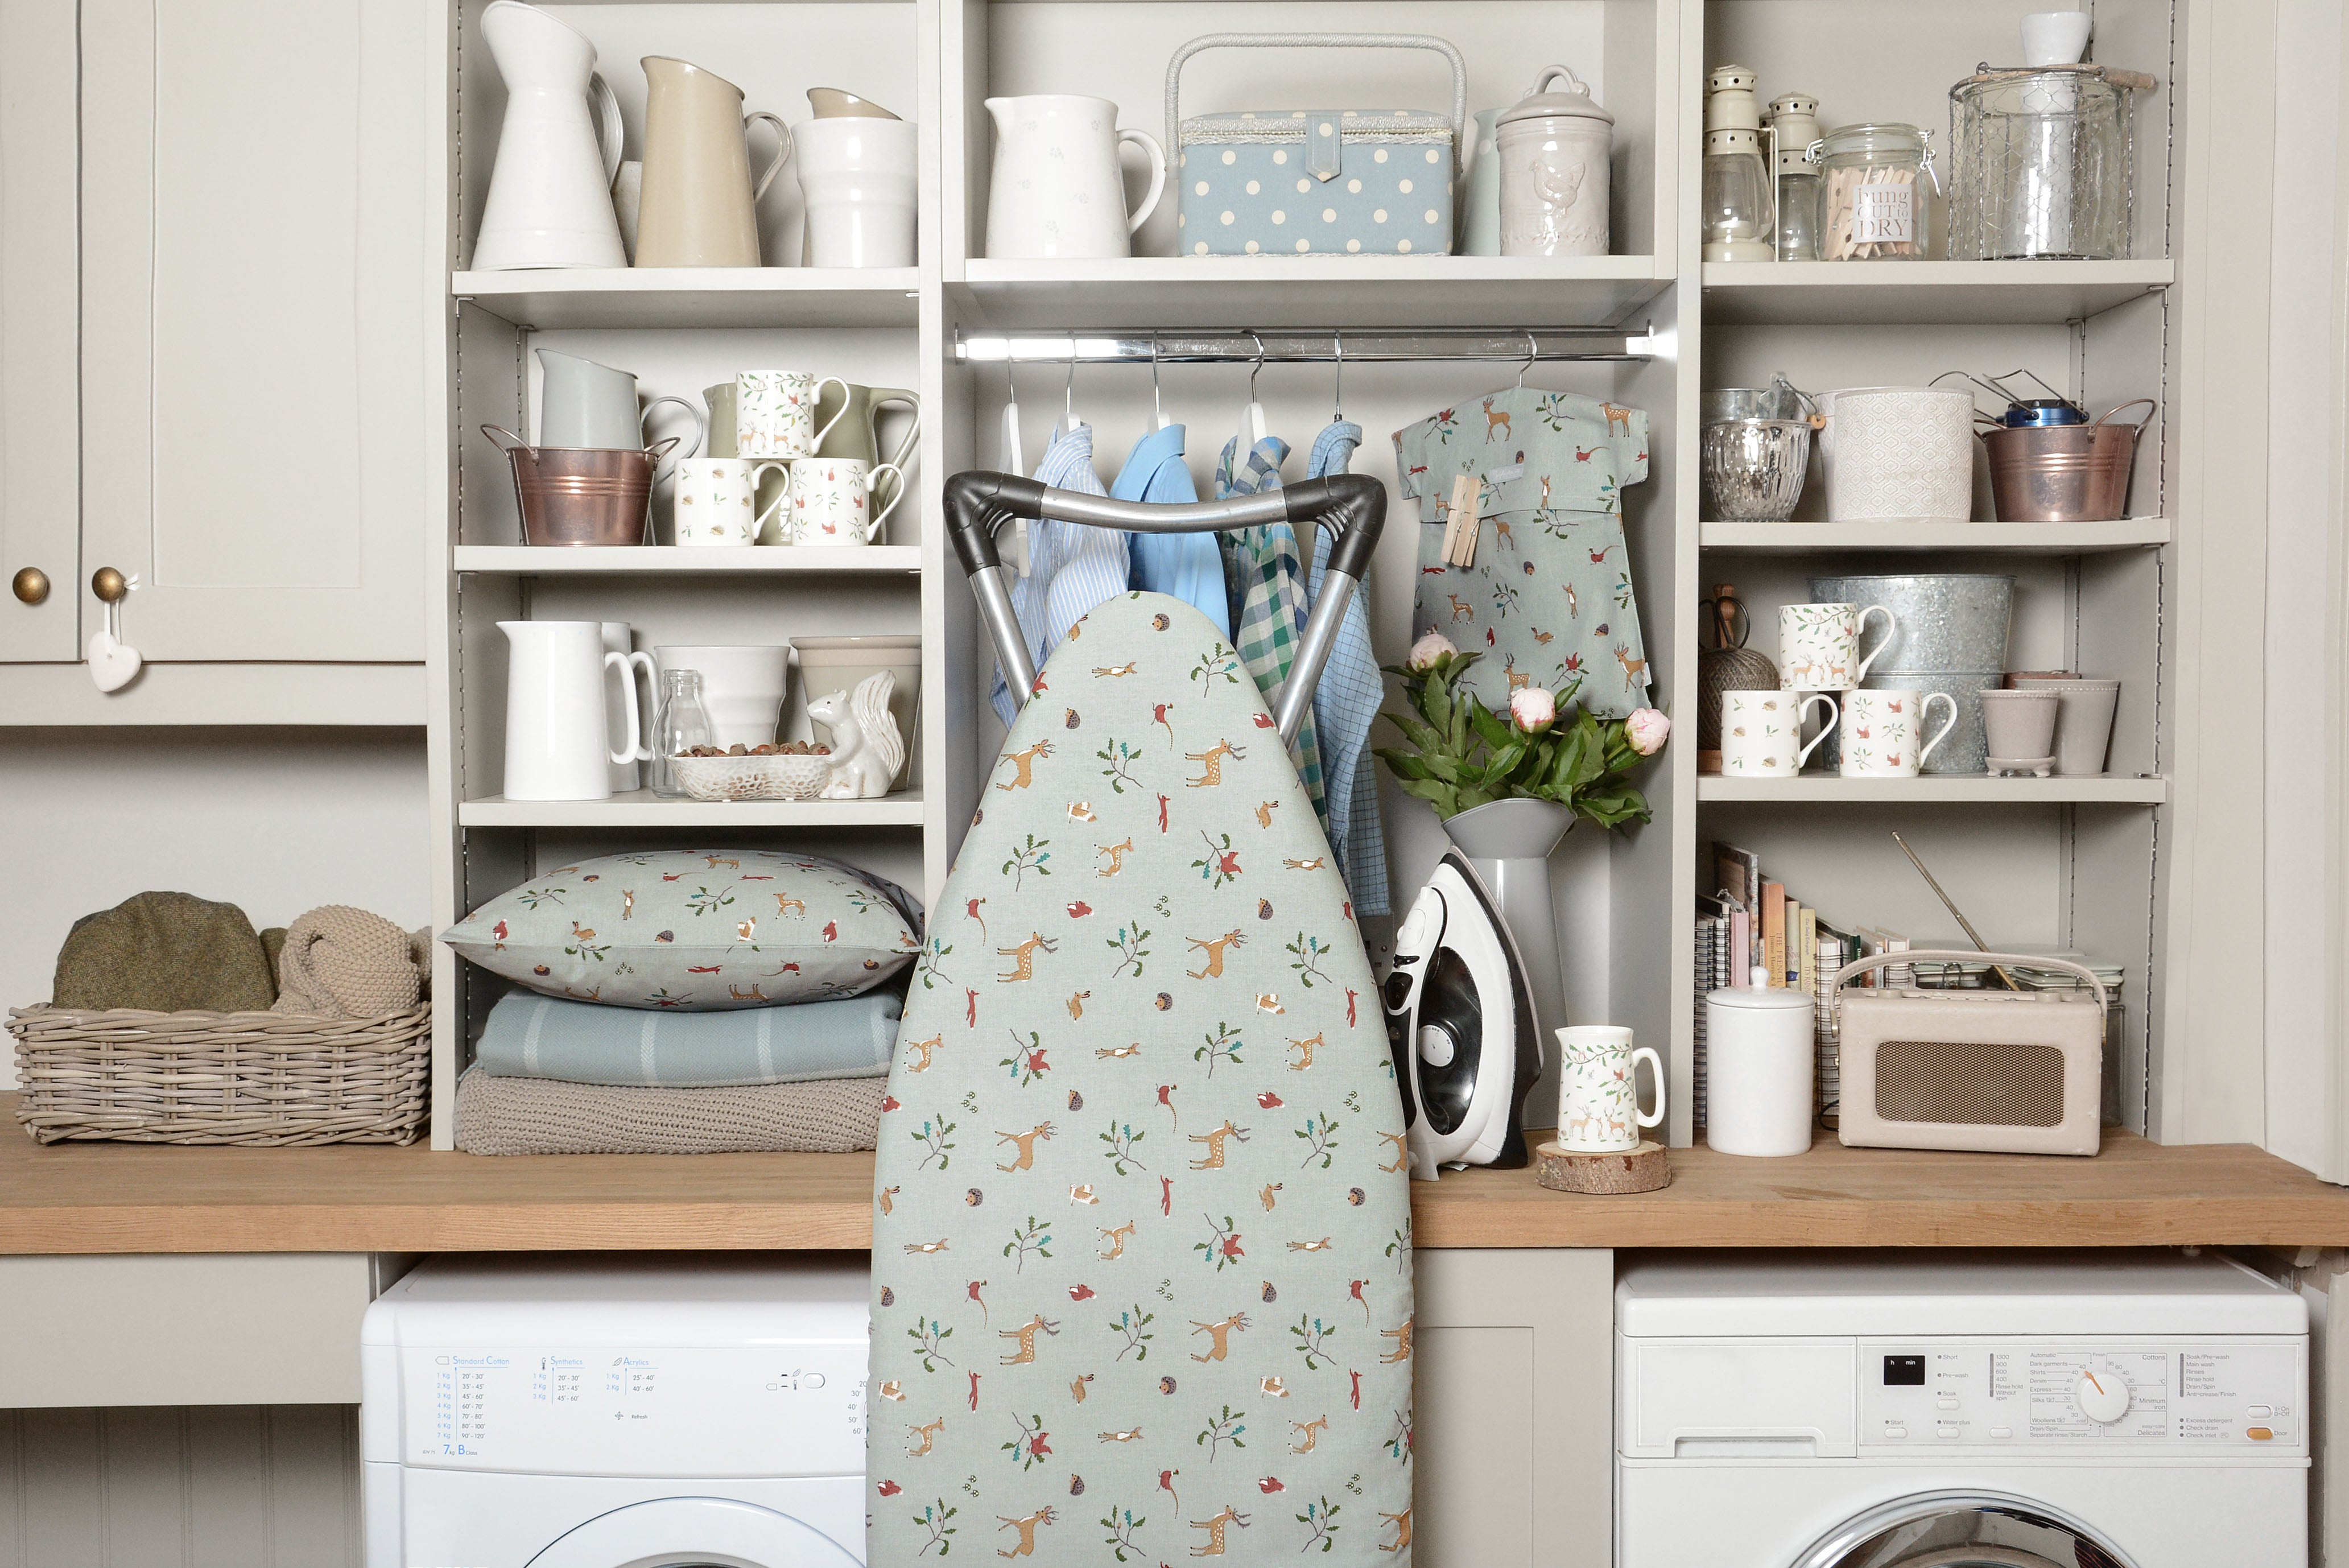 Utility room with ironing board and woodland homeware linens